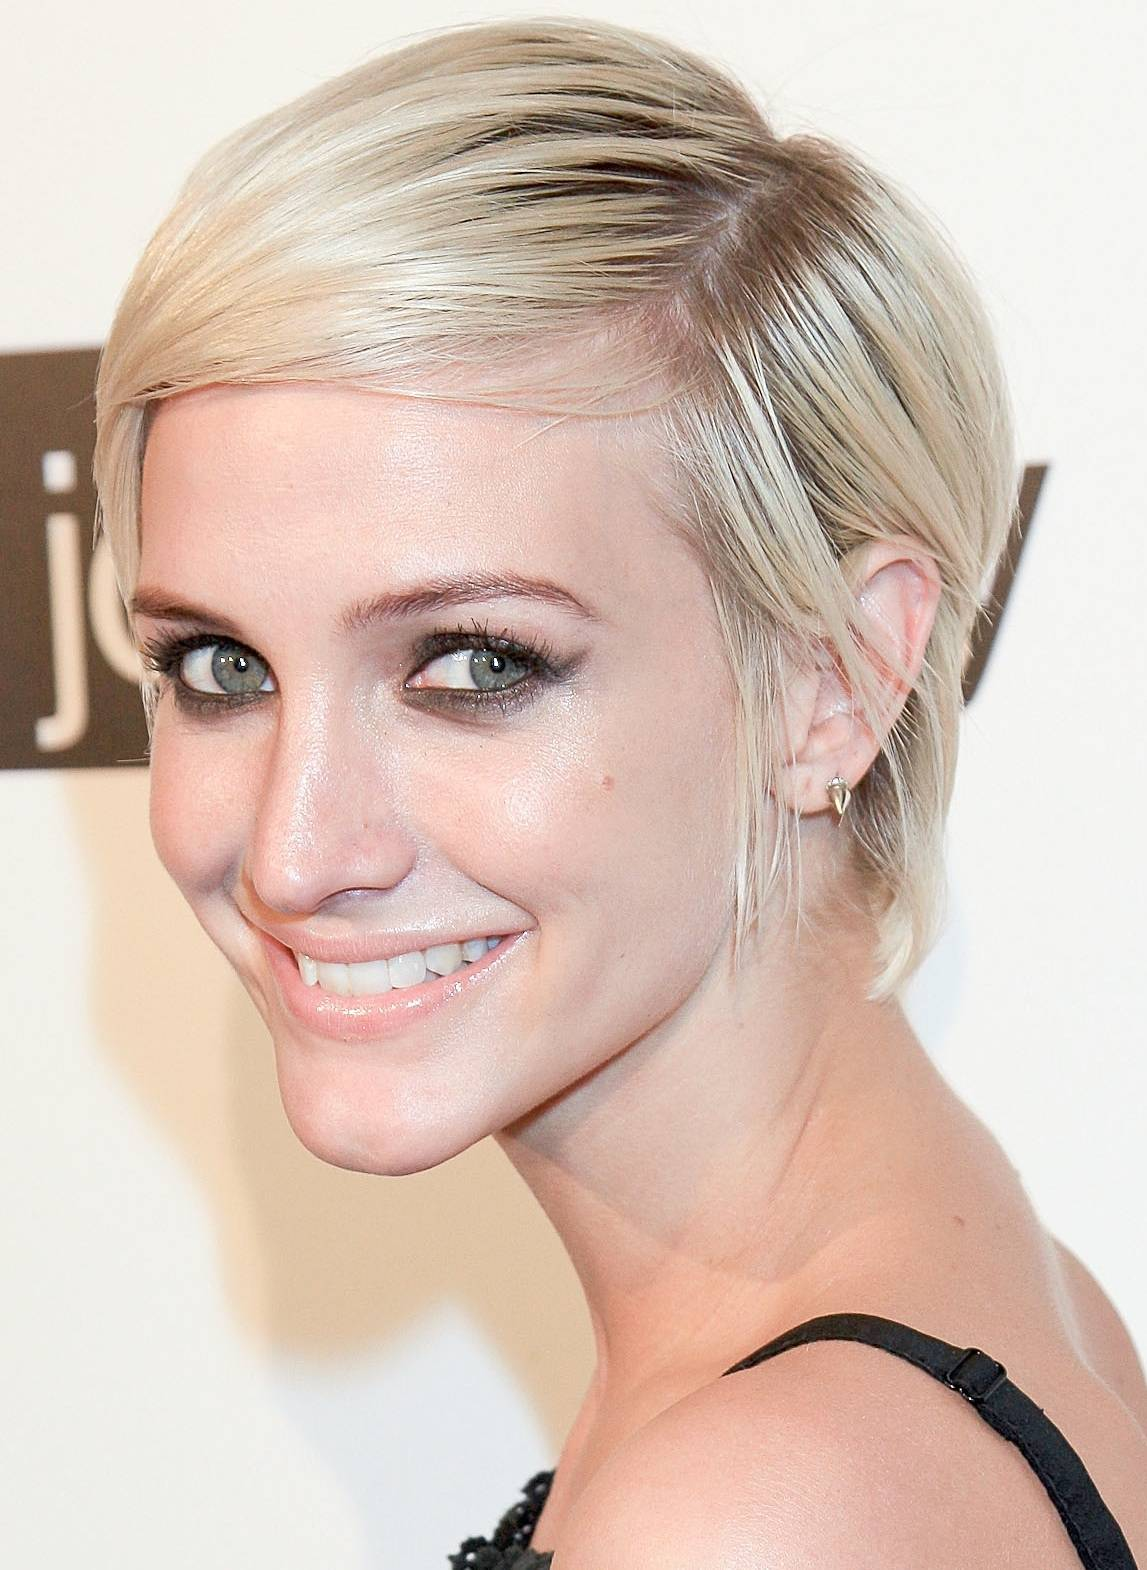 Style Of Cutting Hair : The Pixie: Fashionable Women?s Haircuts Through the Years